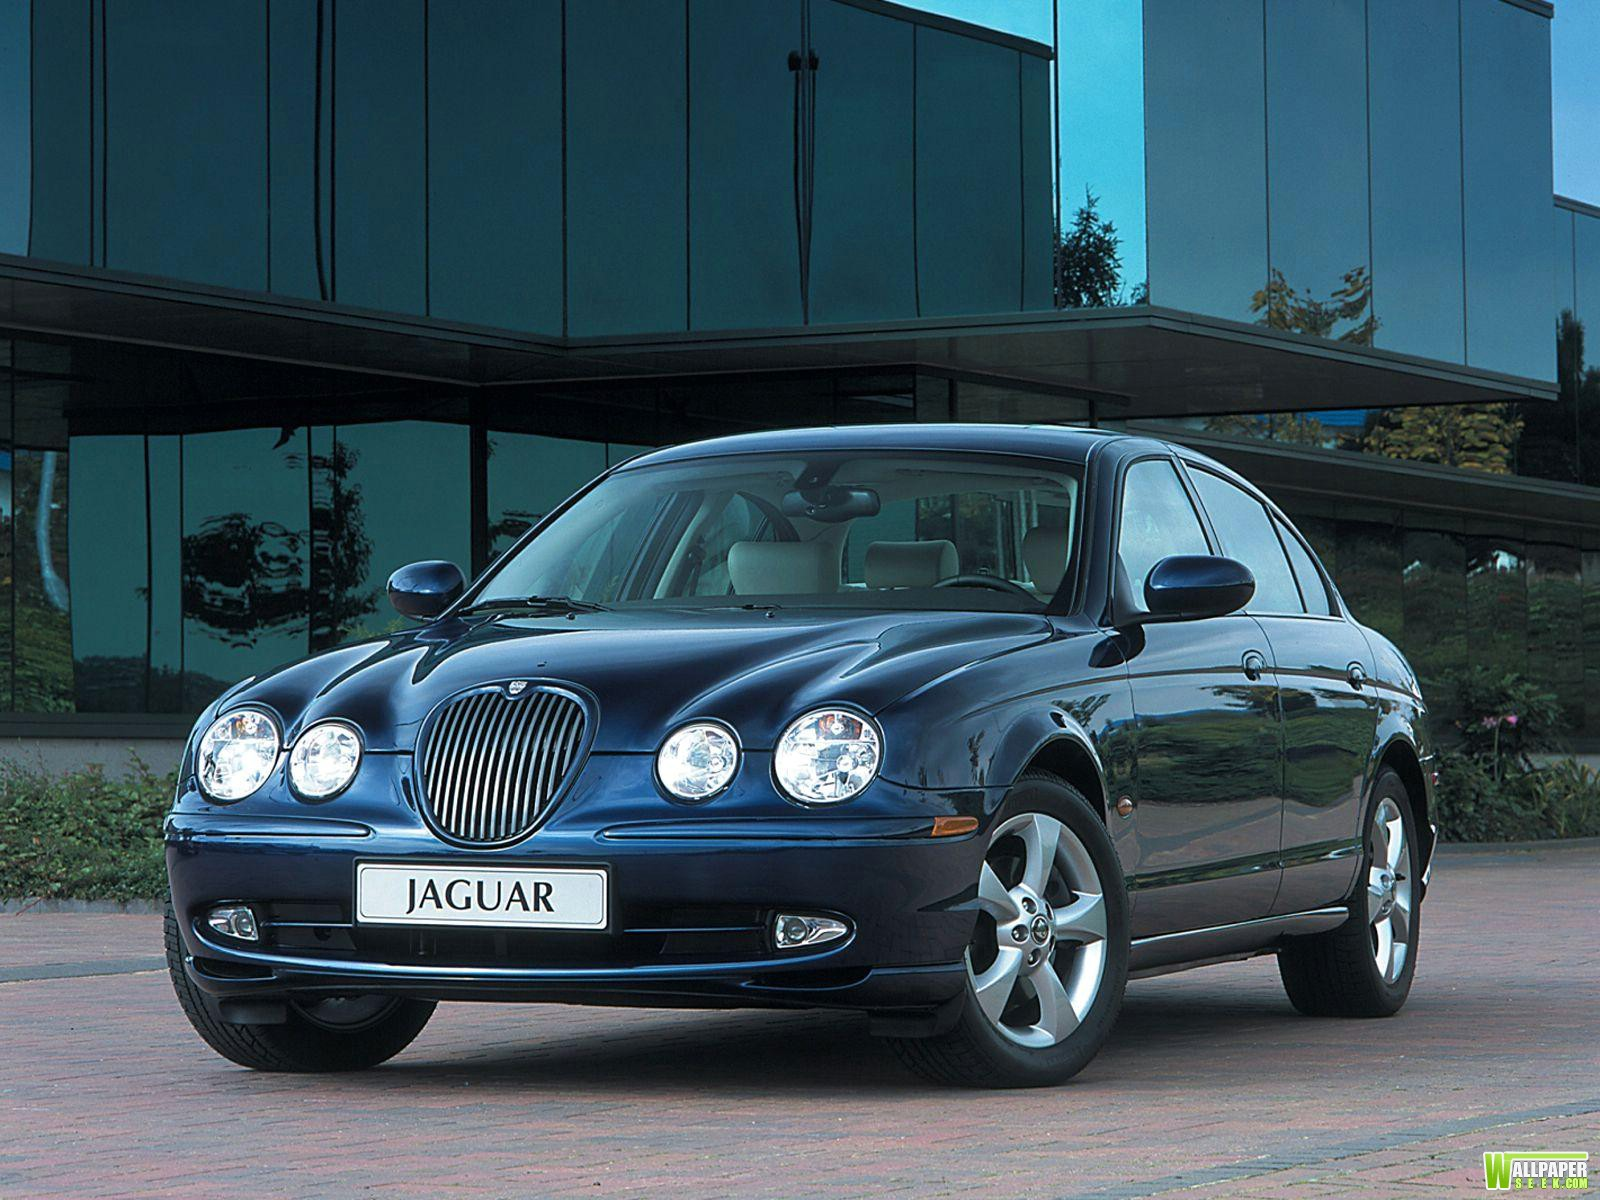 Jaguar Cars Images Hd: Cars Wallpapers And Pictures: Jaguar Car Wallpapers Hd